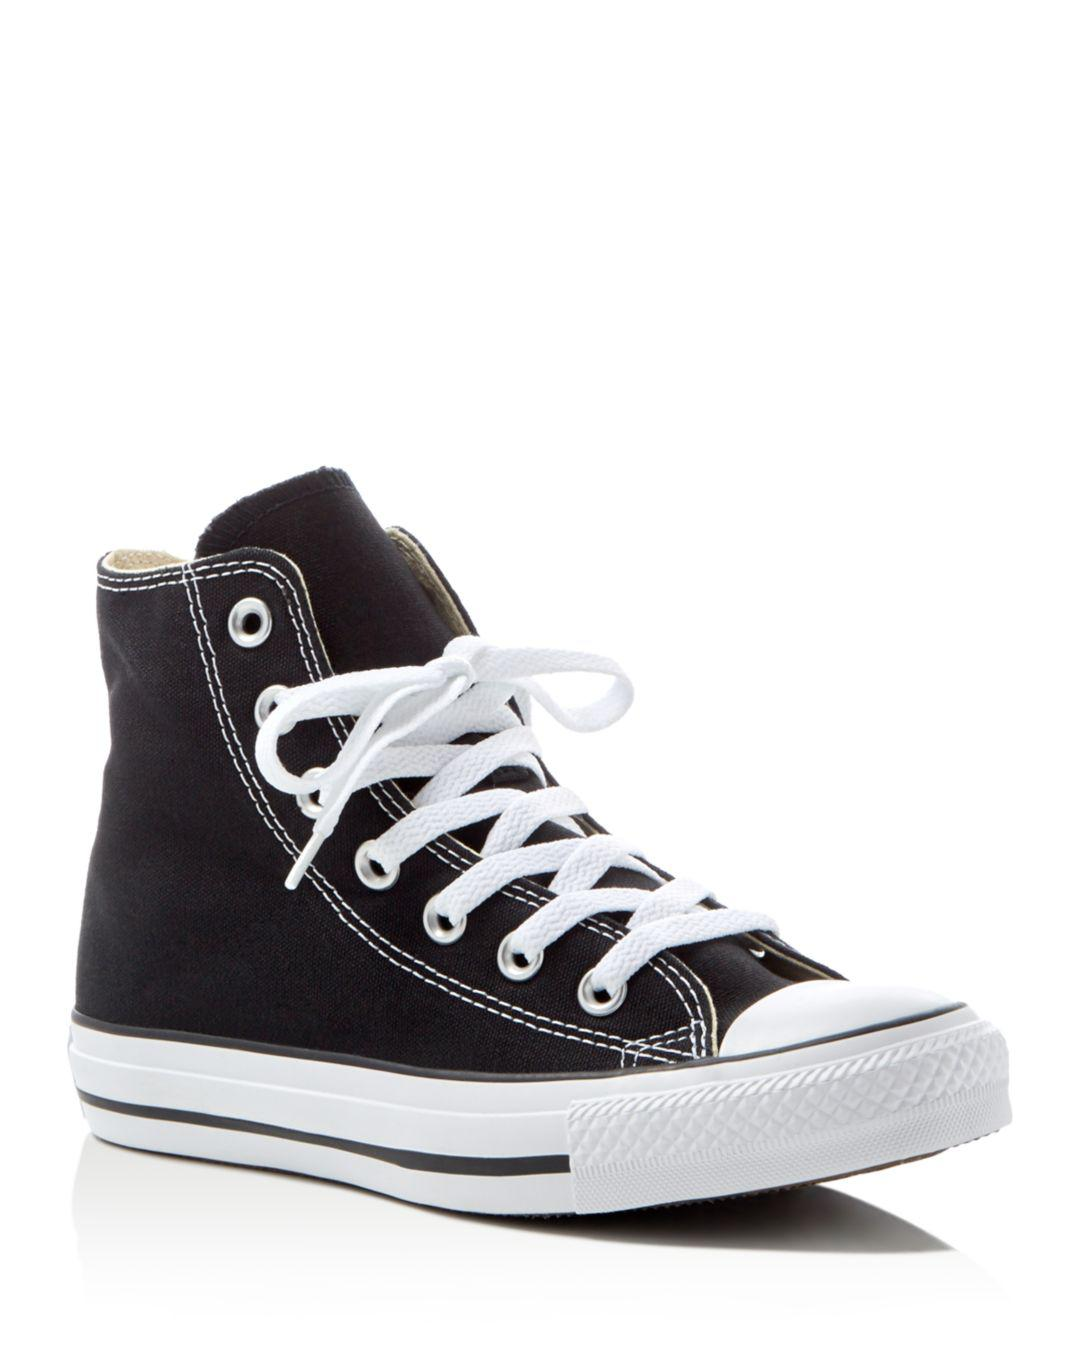 7d347d30a22 Converse Women s Chuck Taylor All Star High Top Sneakers in Black - Lyst